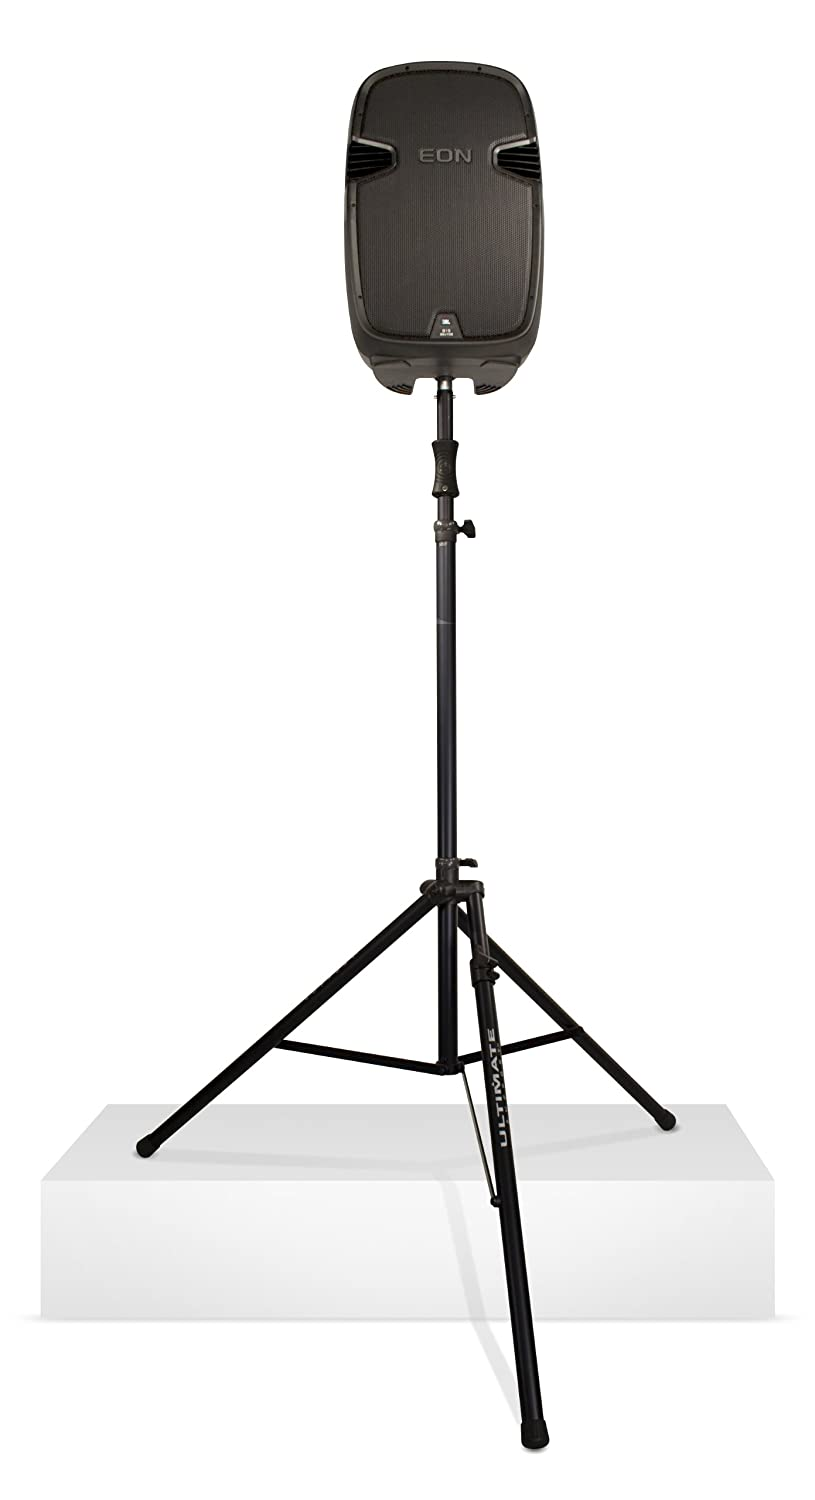 Ultimate Support TS-110BL Air-Powered Series Lift-assist Aluminum Tripod Speaker Stand - Xtra Tall & Includes Leveling Leg - None - TS110BL 77781-B